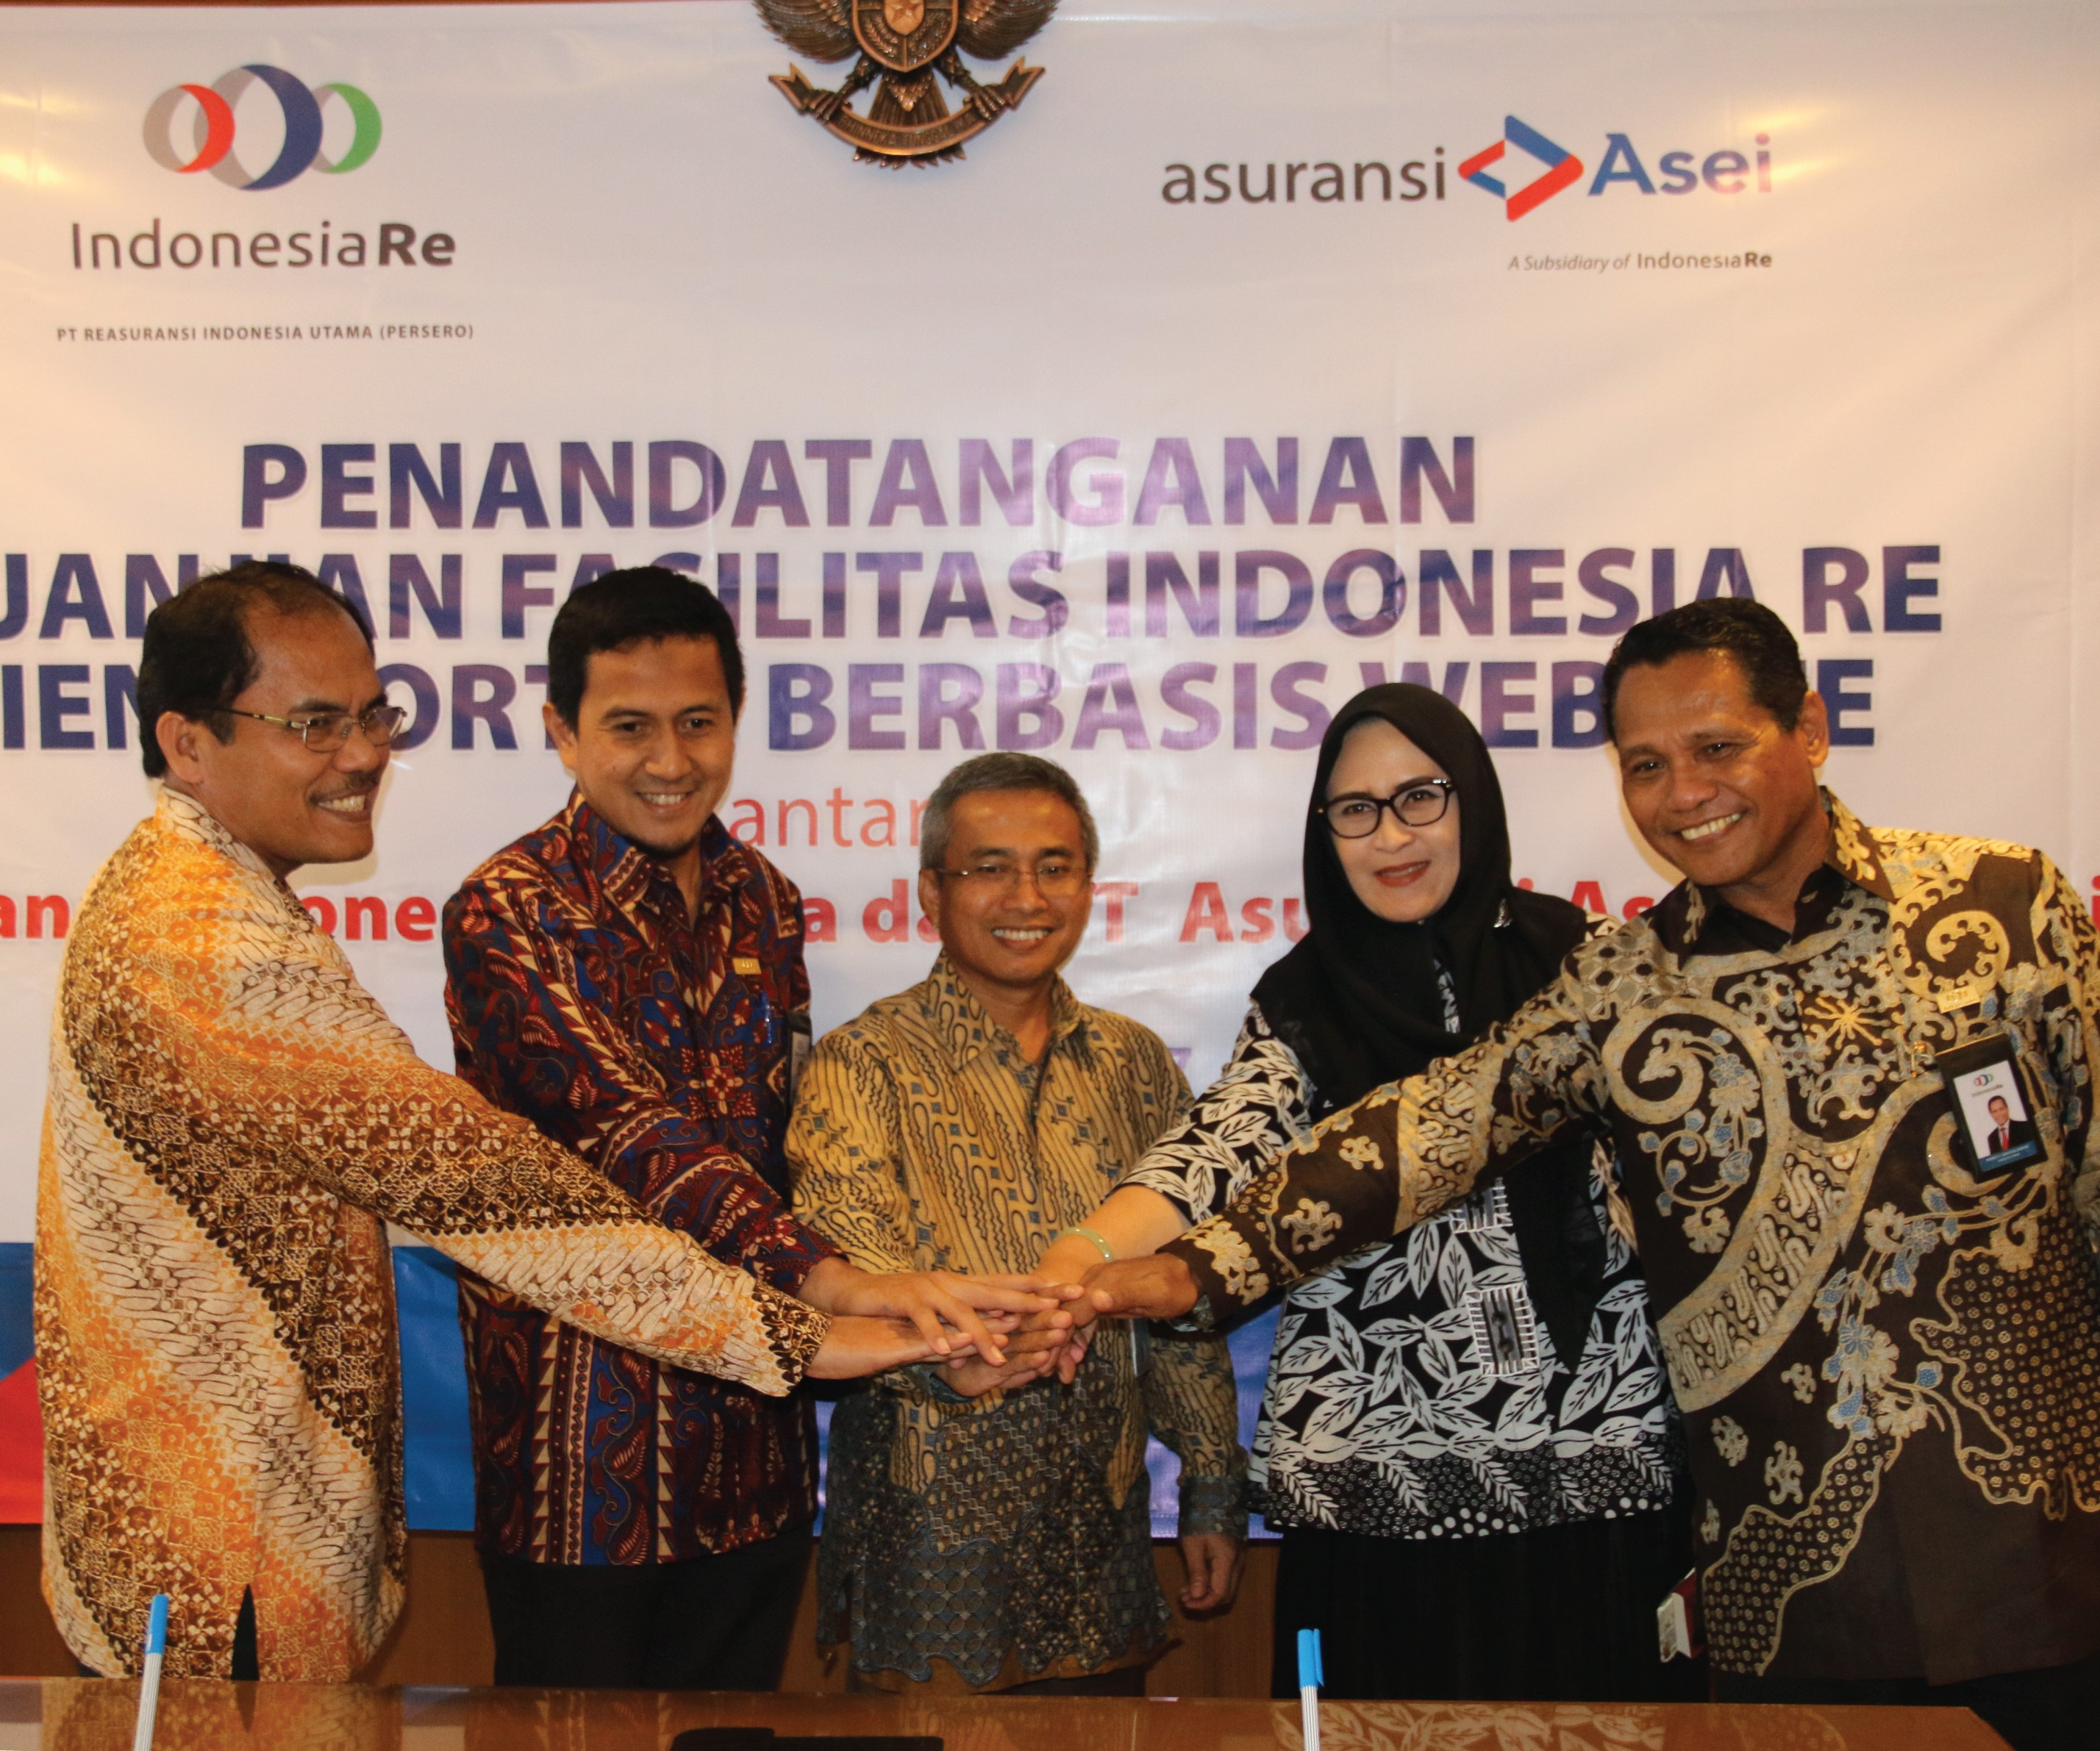 The Signing of Indonesia Re Client Web-Based Portal Facility Agreement